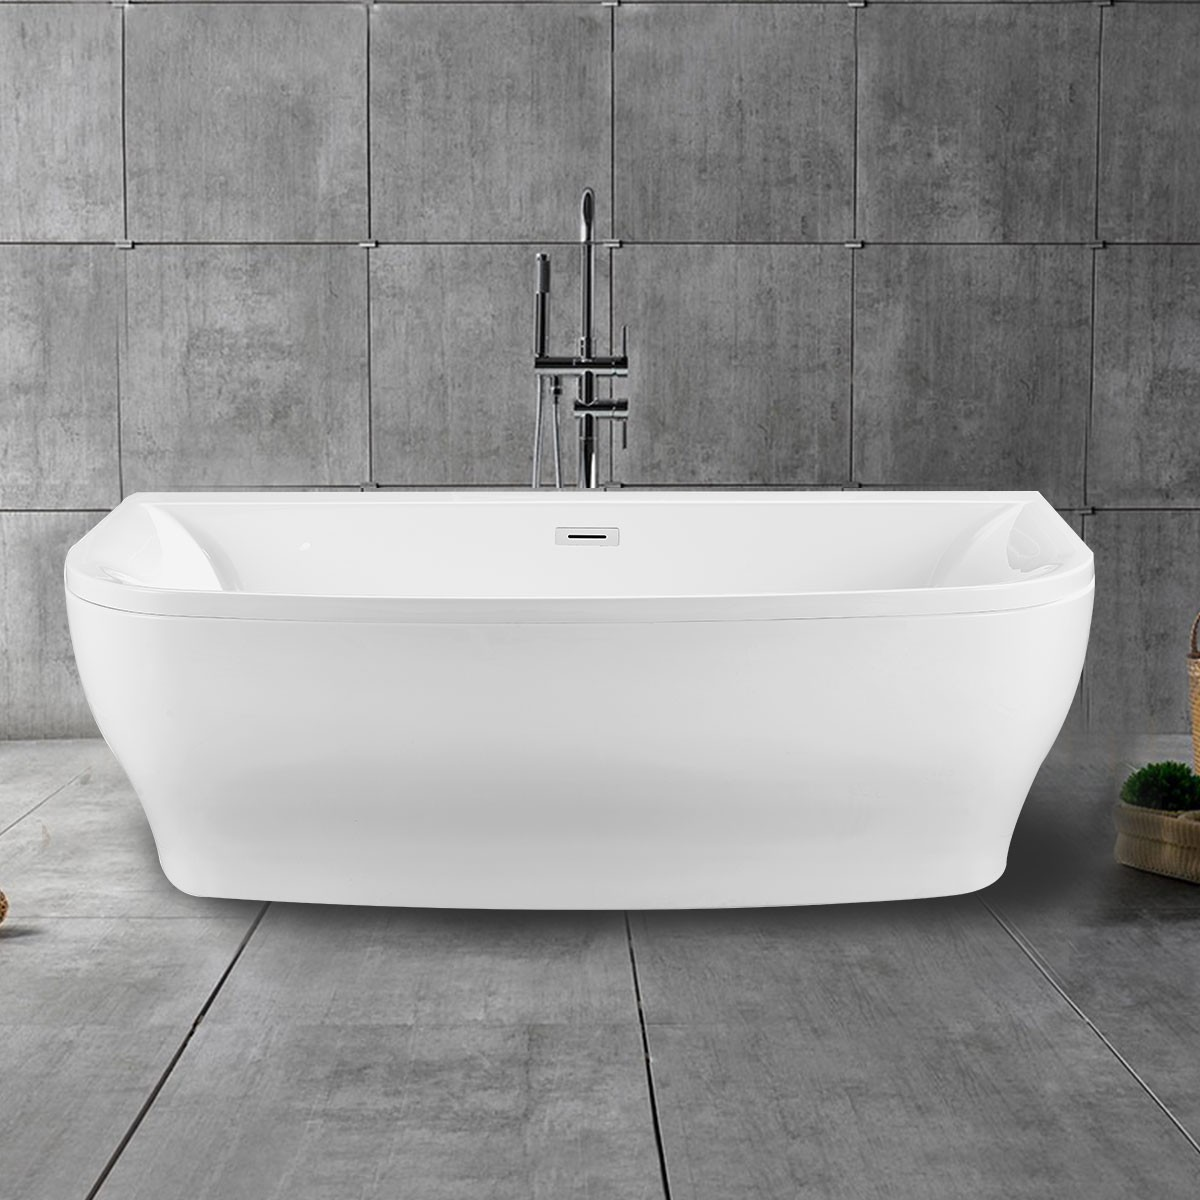 65 In Back To Wall Freestanding Bathtub With Drain